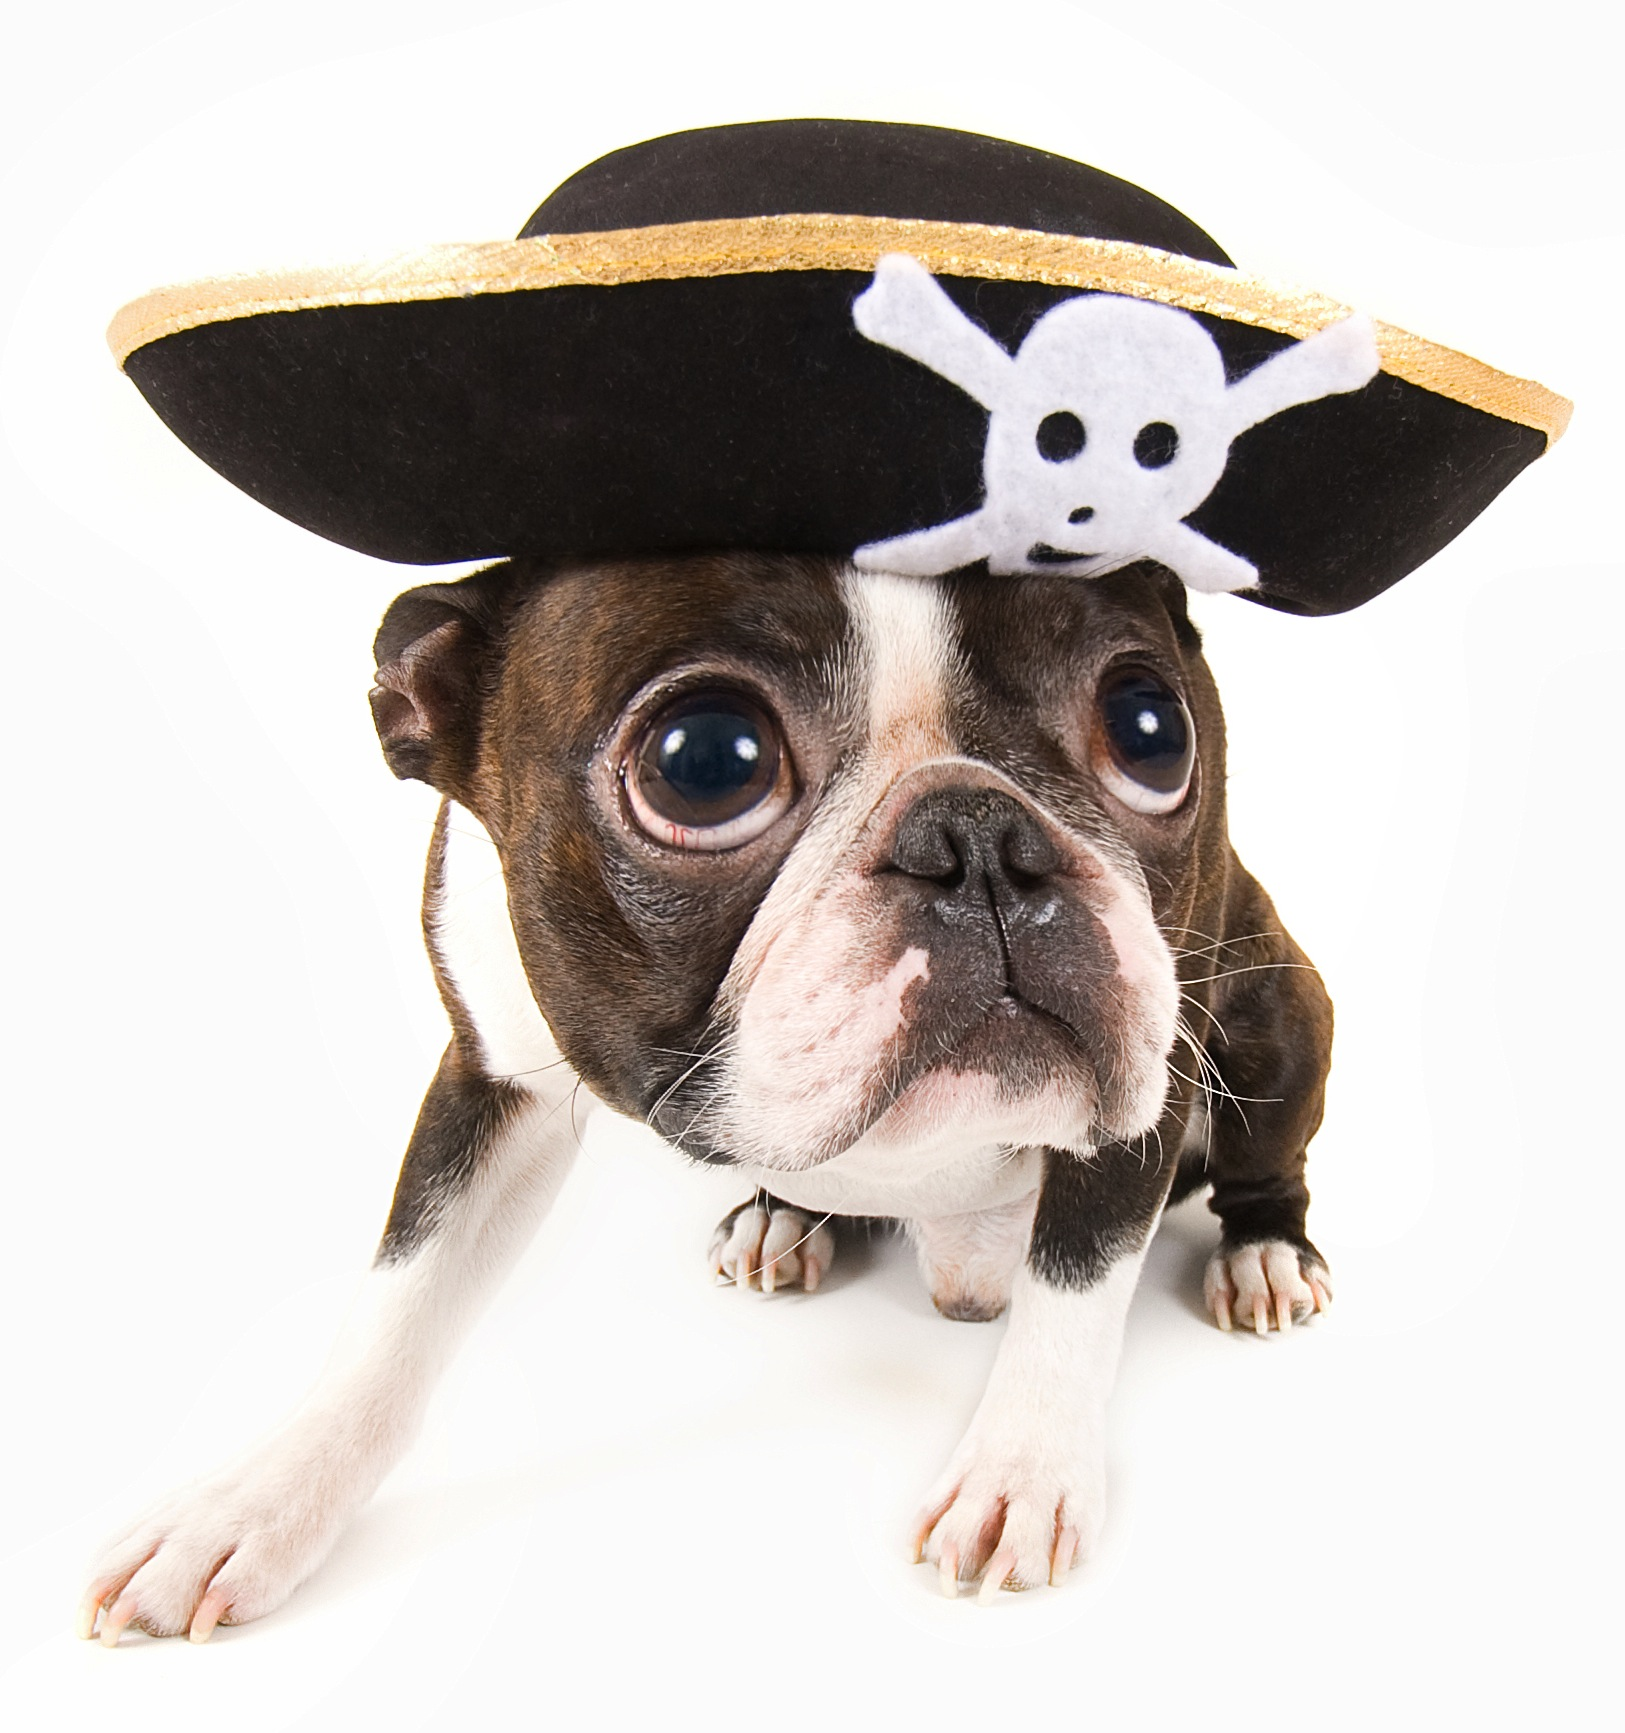 Pet Insurance Companies >> Halloween Pets Photo Contest: Win $1,000 for a Favorite Animal Shelter